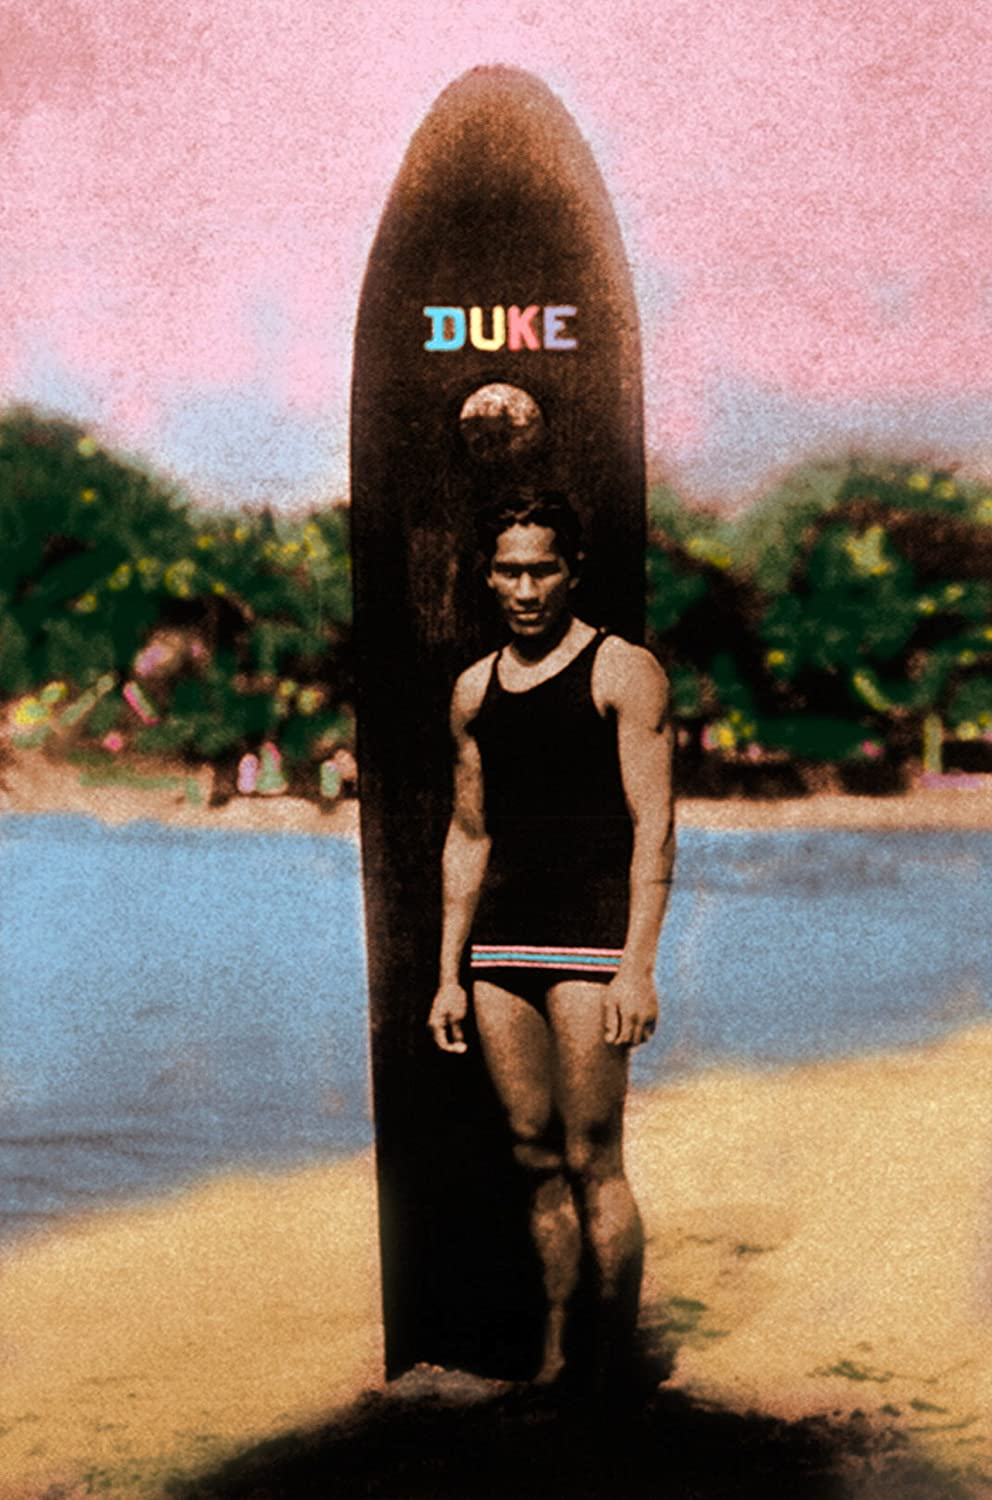 THE DUKE Limited time sale KAHANAMOKU HAWAII SURFING Photograph Fixed price for sale By Michael LEGEND